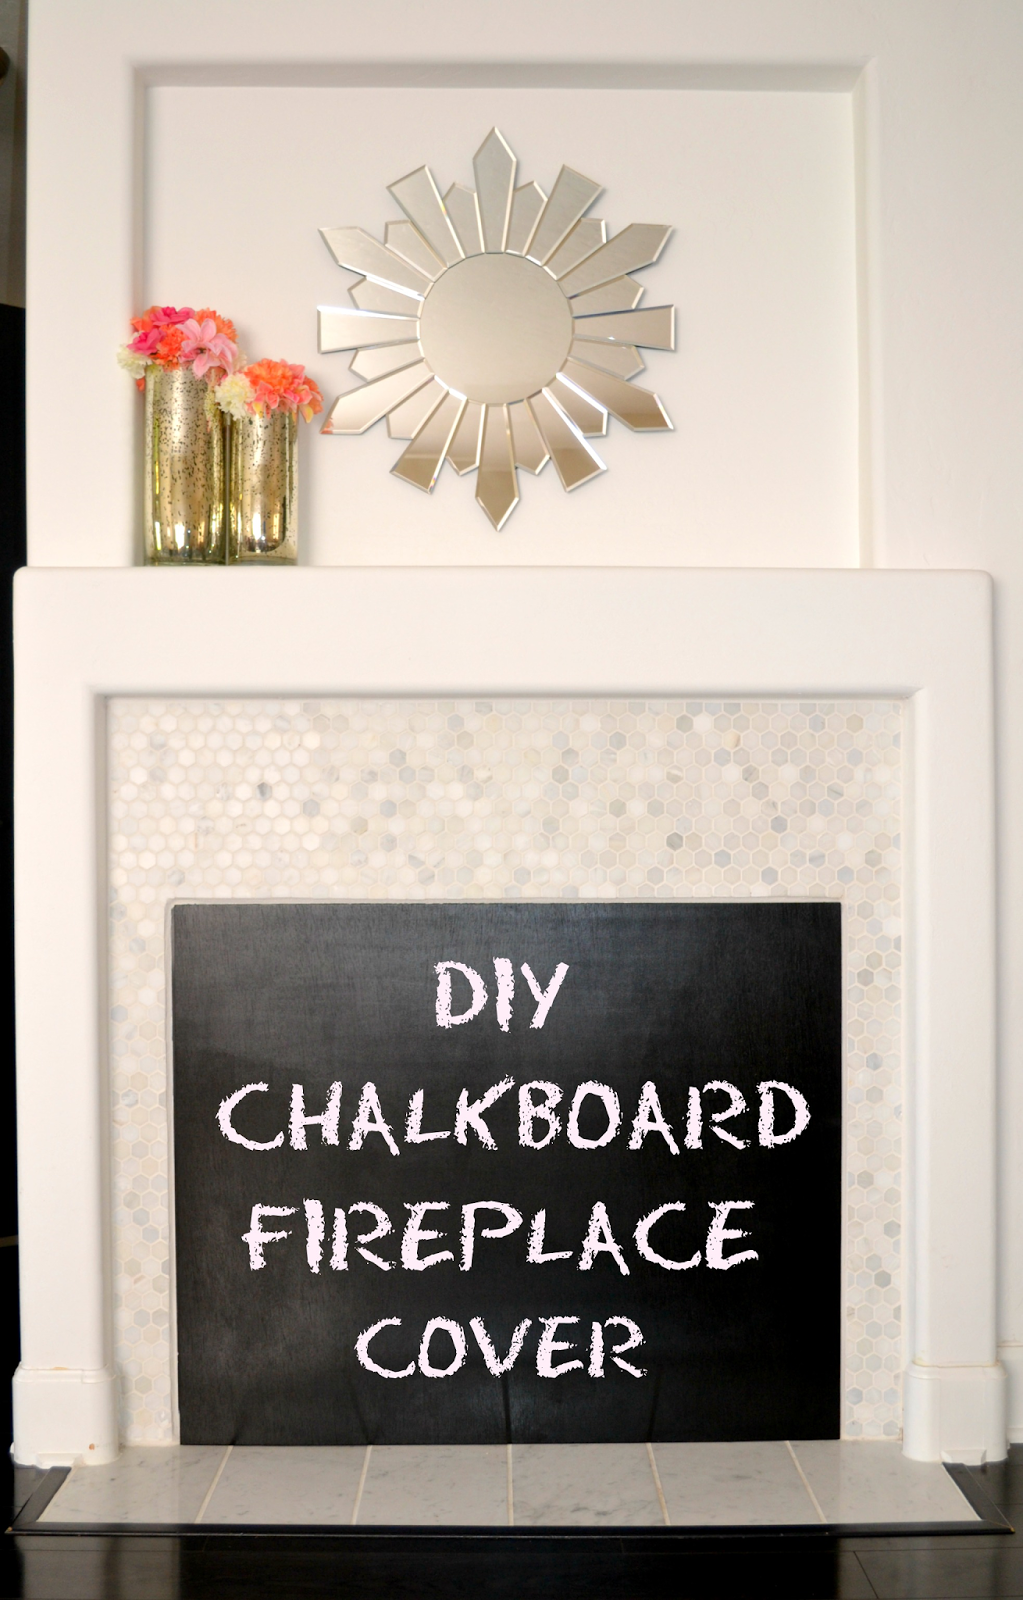 Dette Cakes Diy Chalkboard Fireplace Cover Playroom